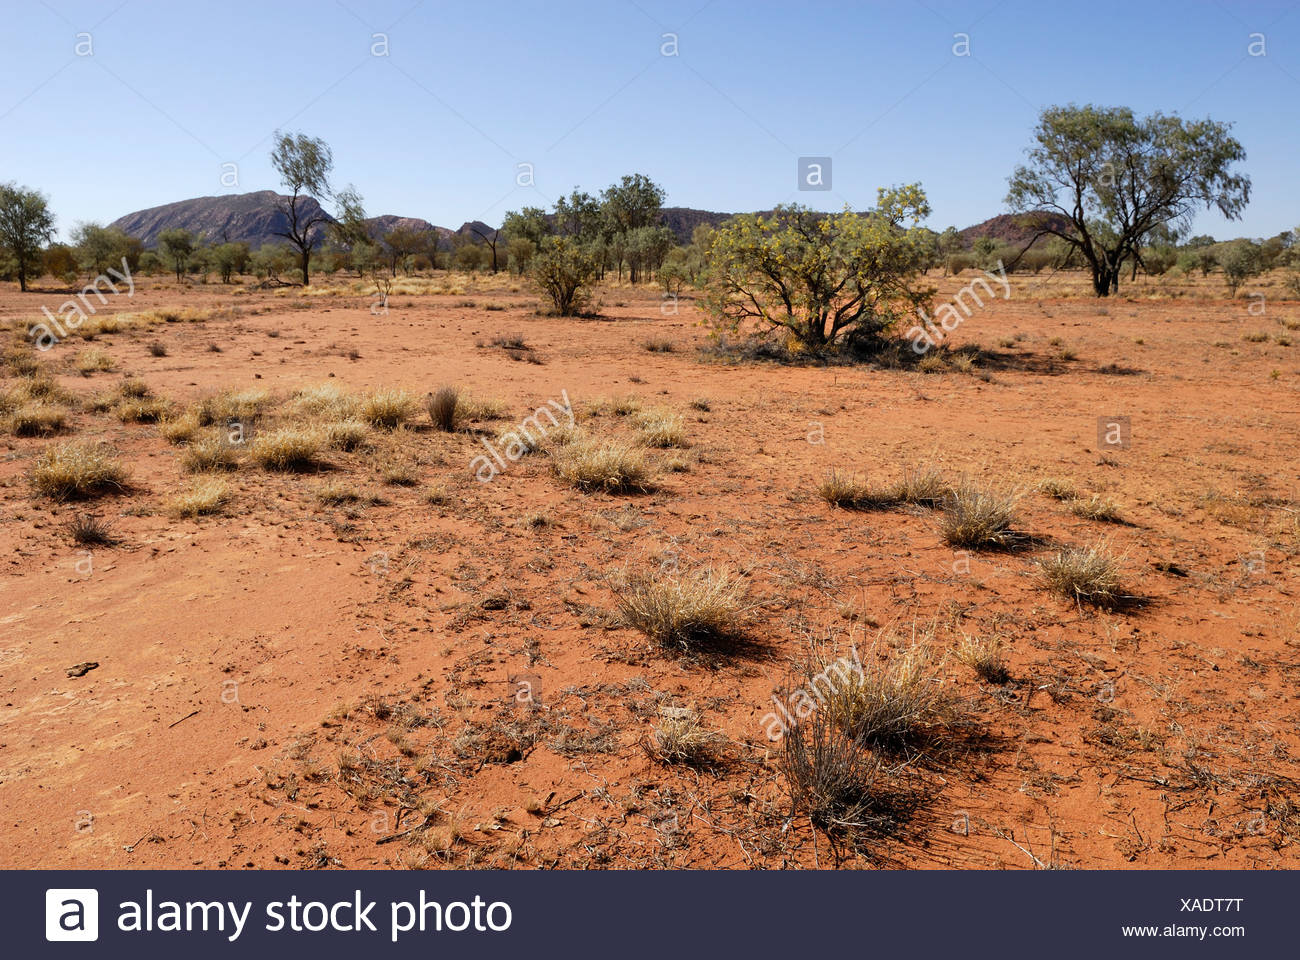 Outback, East Macdonnell Ranges, Northern Territory, Australia - Stock Image